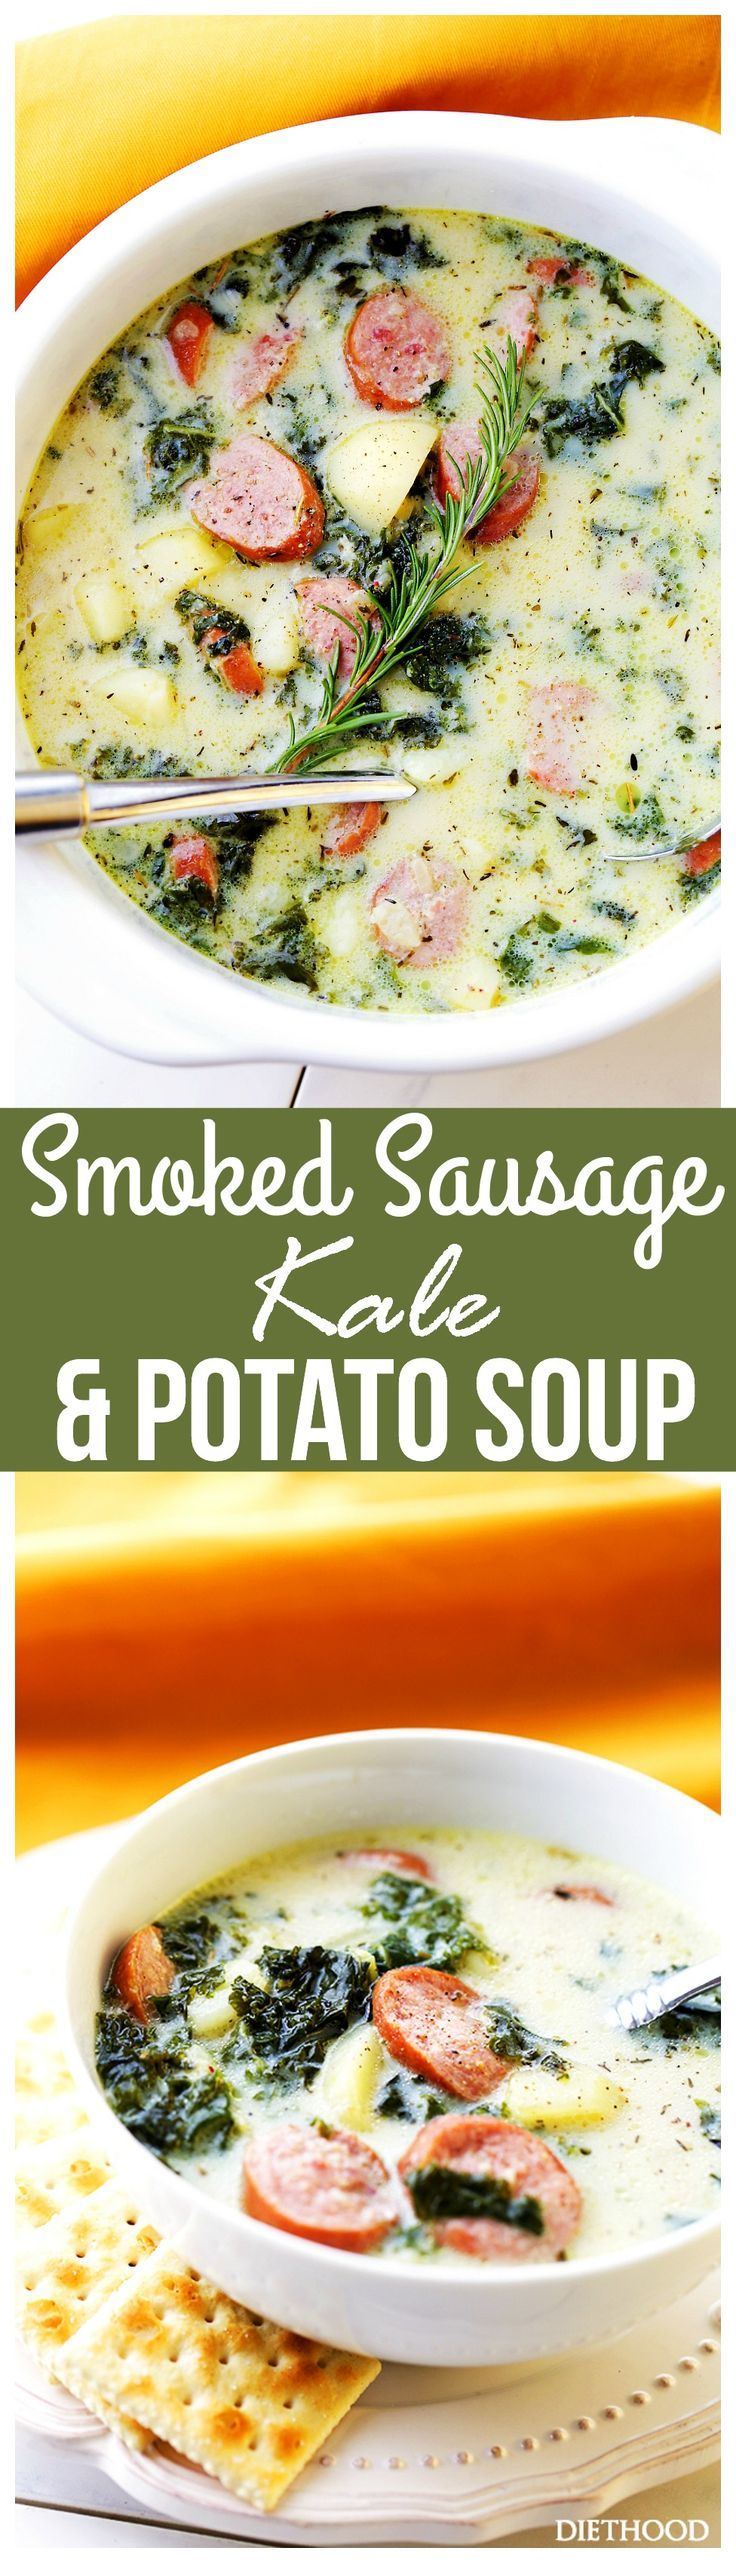 Smoked Sausage, Kale and Potato Soup - This wonderful, hearty, delicious soup is loaded with smoked sausage, kale and potatoes, and is done in just 30 minutes.